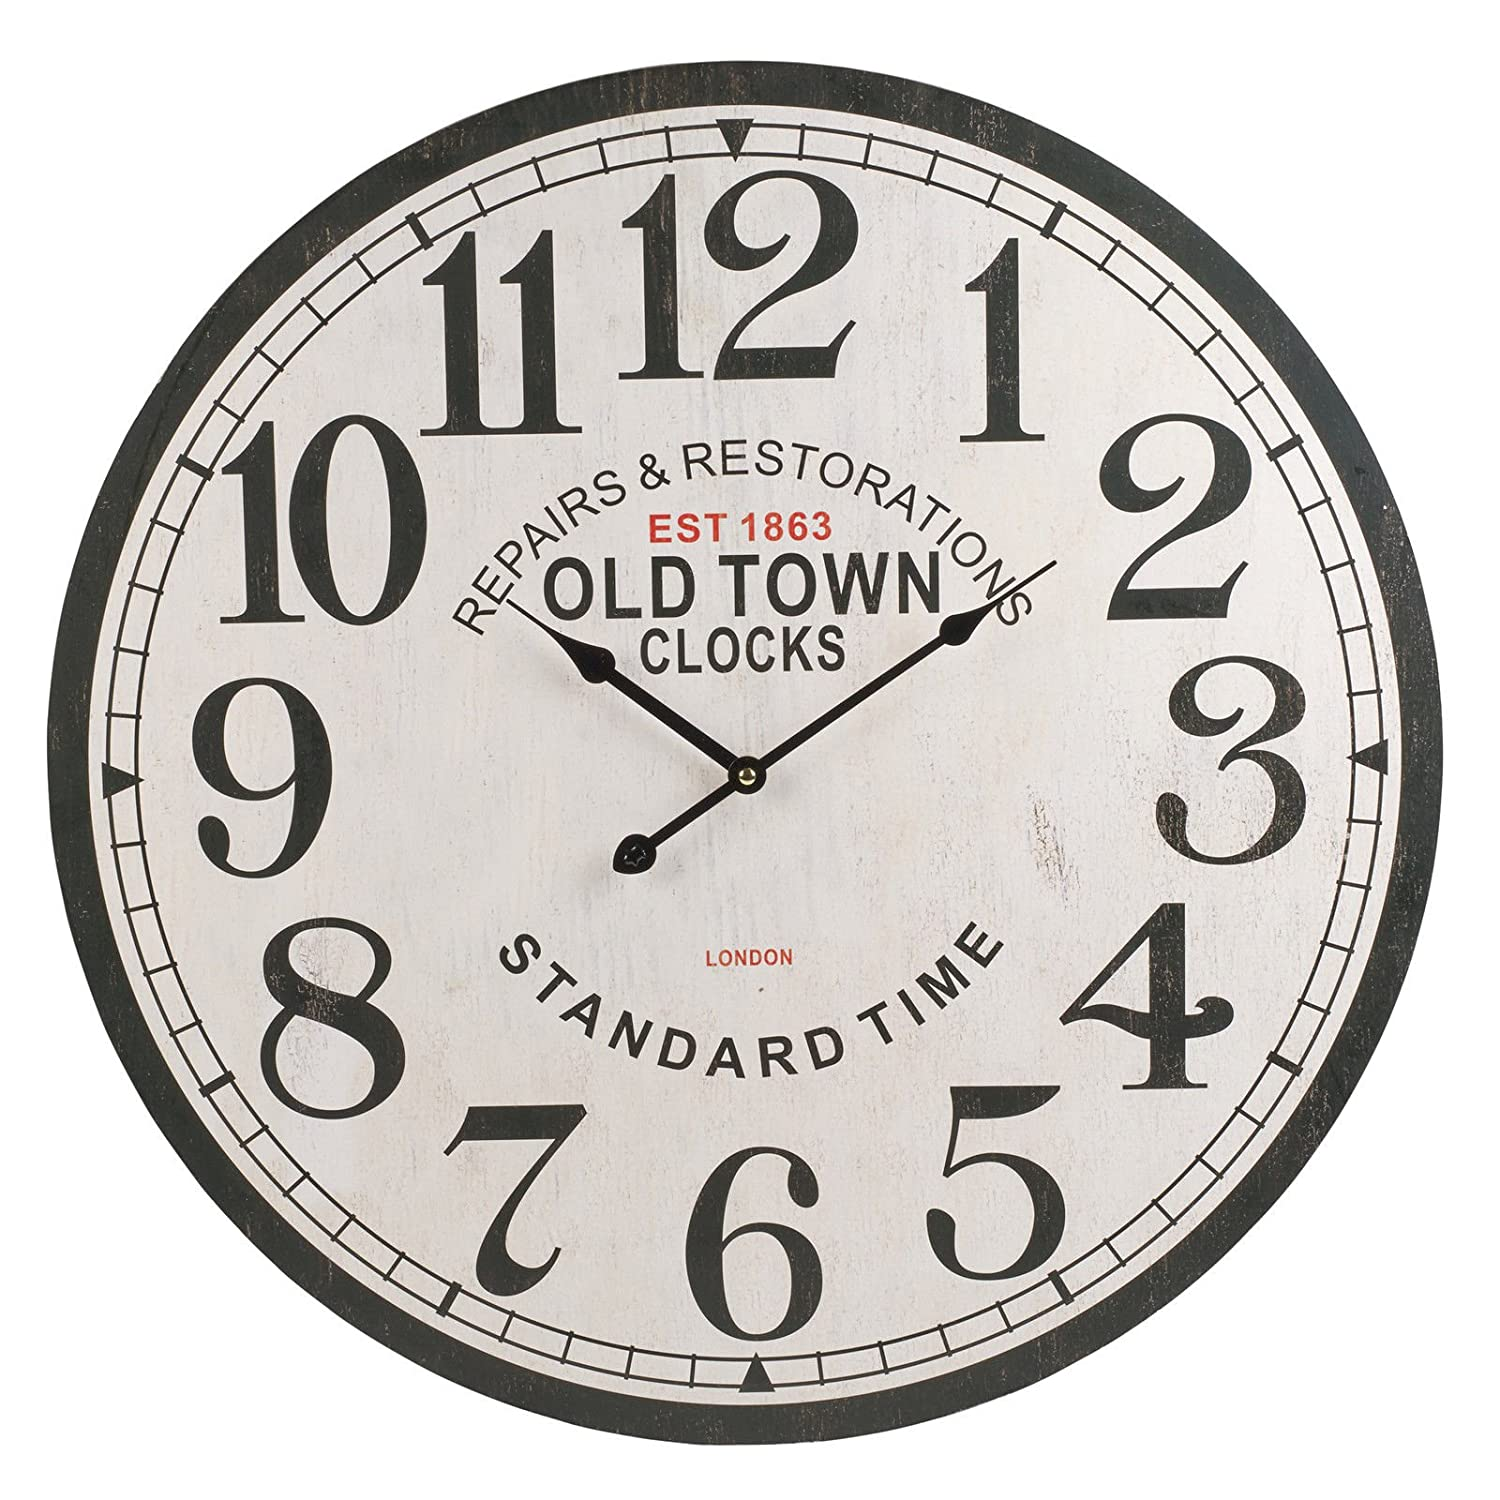 60cm Extra Large Round Wooden Wall Clock Vintage Retro Style (London - Standard Time)